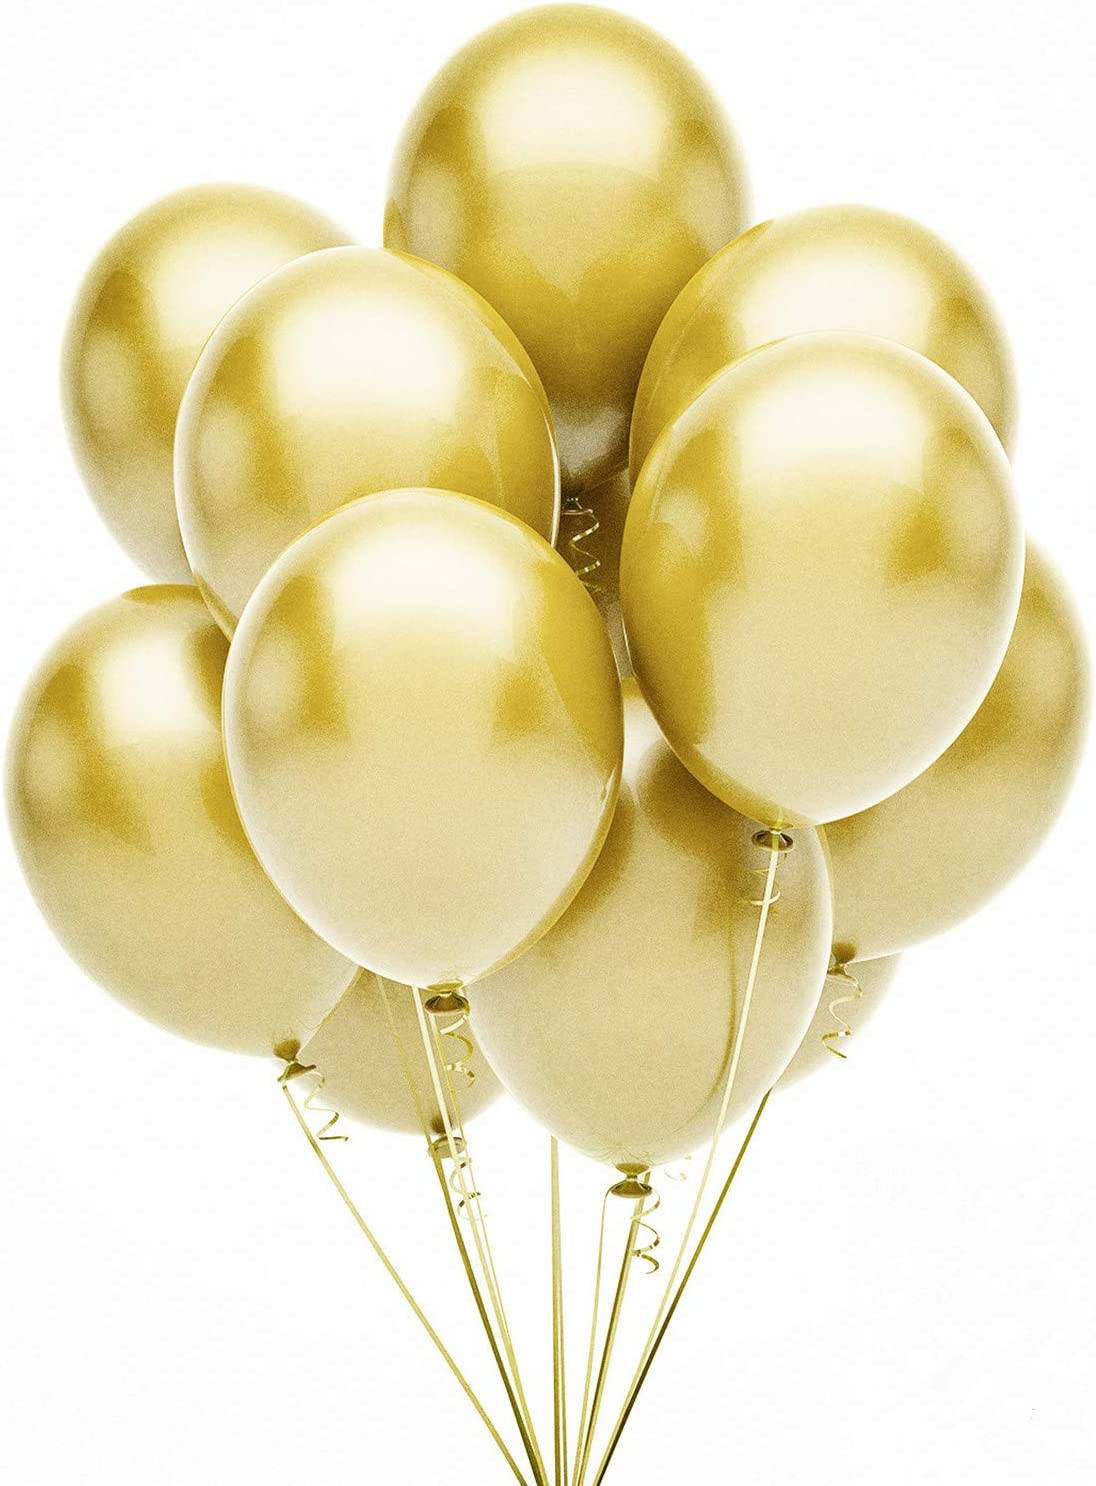 HDLJD Gold Balloons, 12 Inch Gold Metallic Latex Balloons for Happy Birthday Baby Showers Bridal Shower Wedding Party Decorations - 50PCS